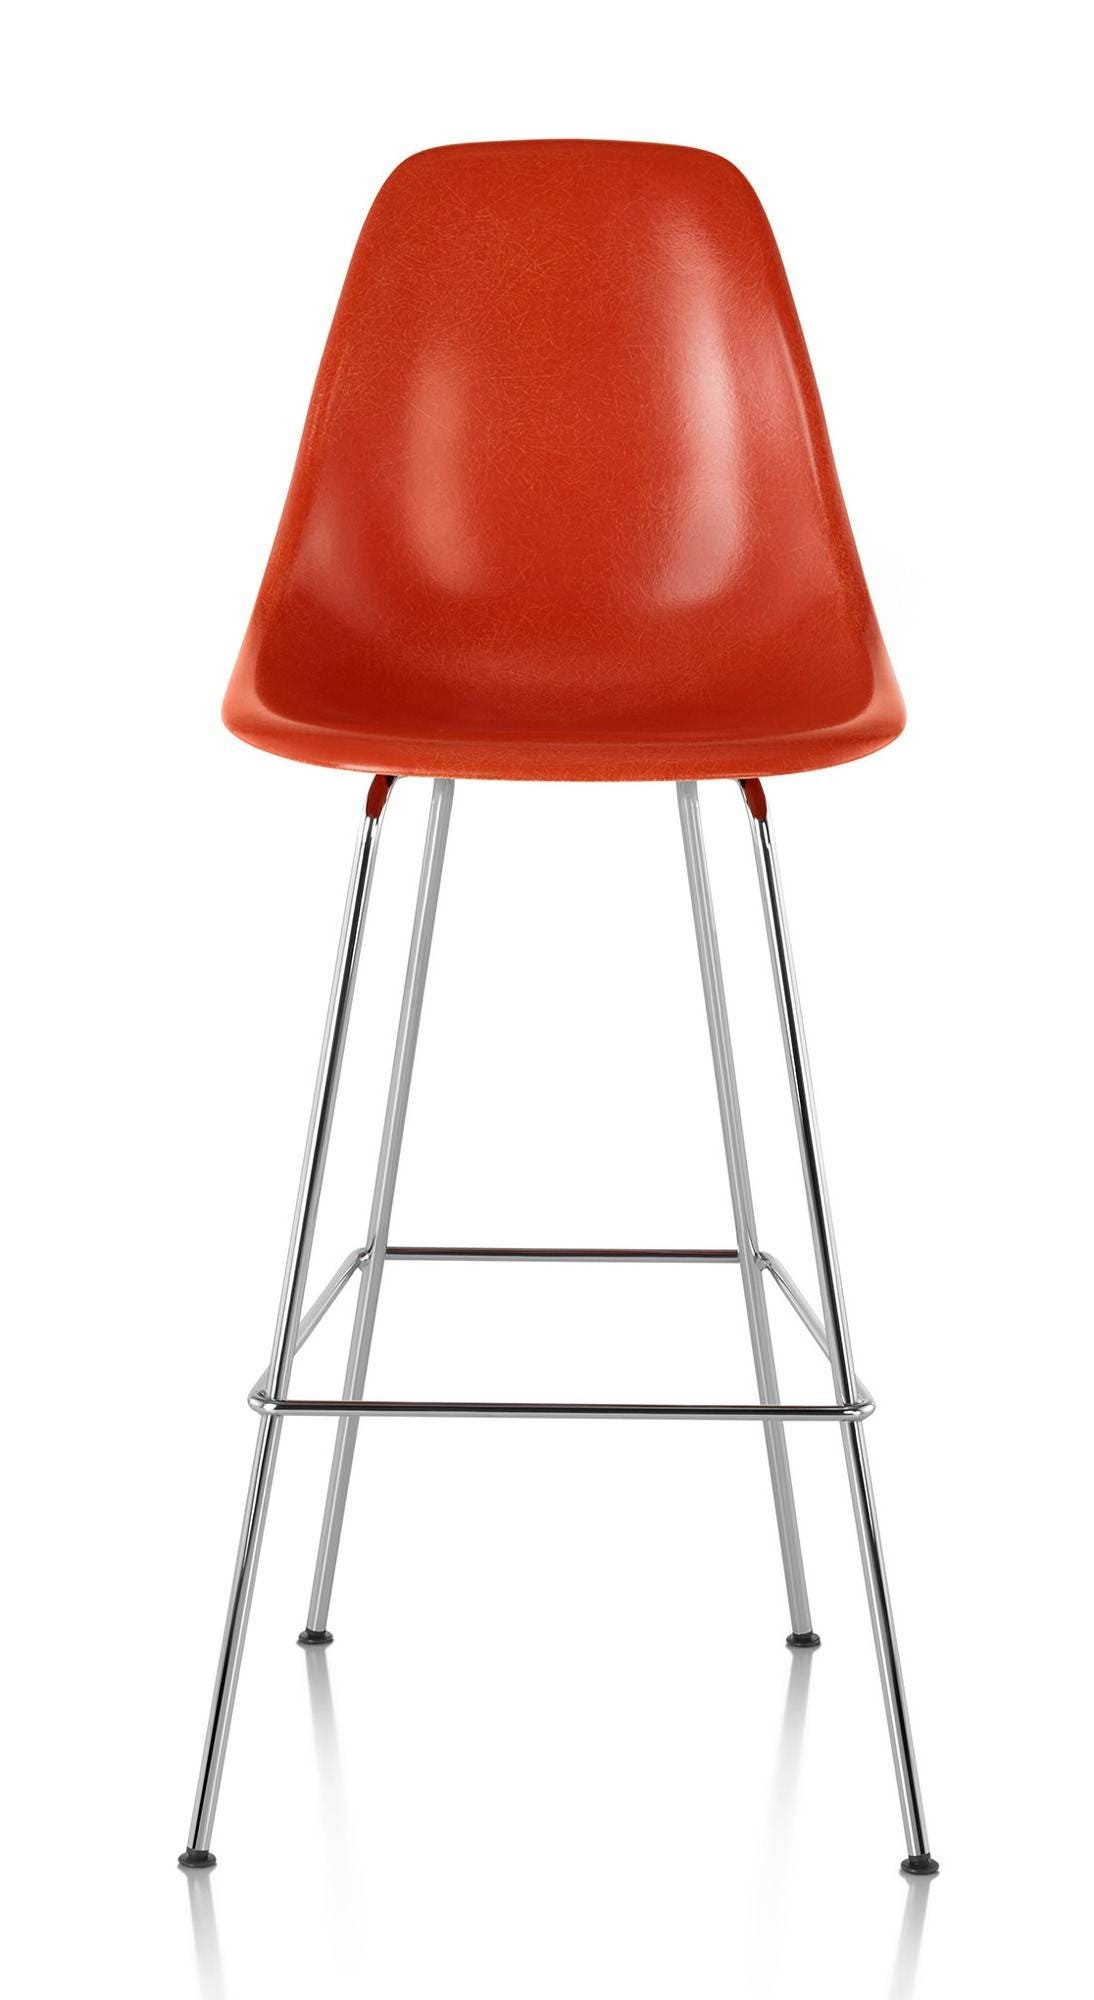 Herman Miller Eames174 Molded Fiberglass Stool GR Shop Canada : herman molded fiberglas stool 1 from grshop.com size 1094 x 2000 jpeg 146kB